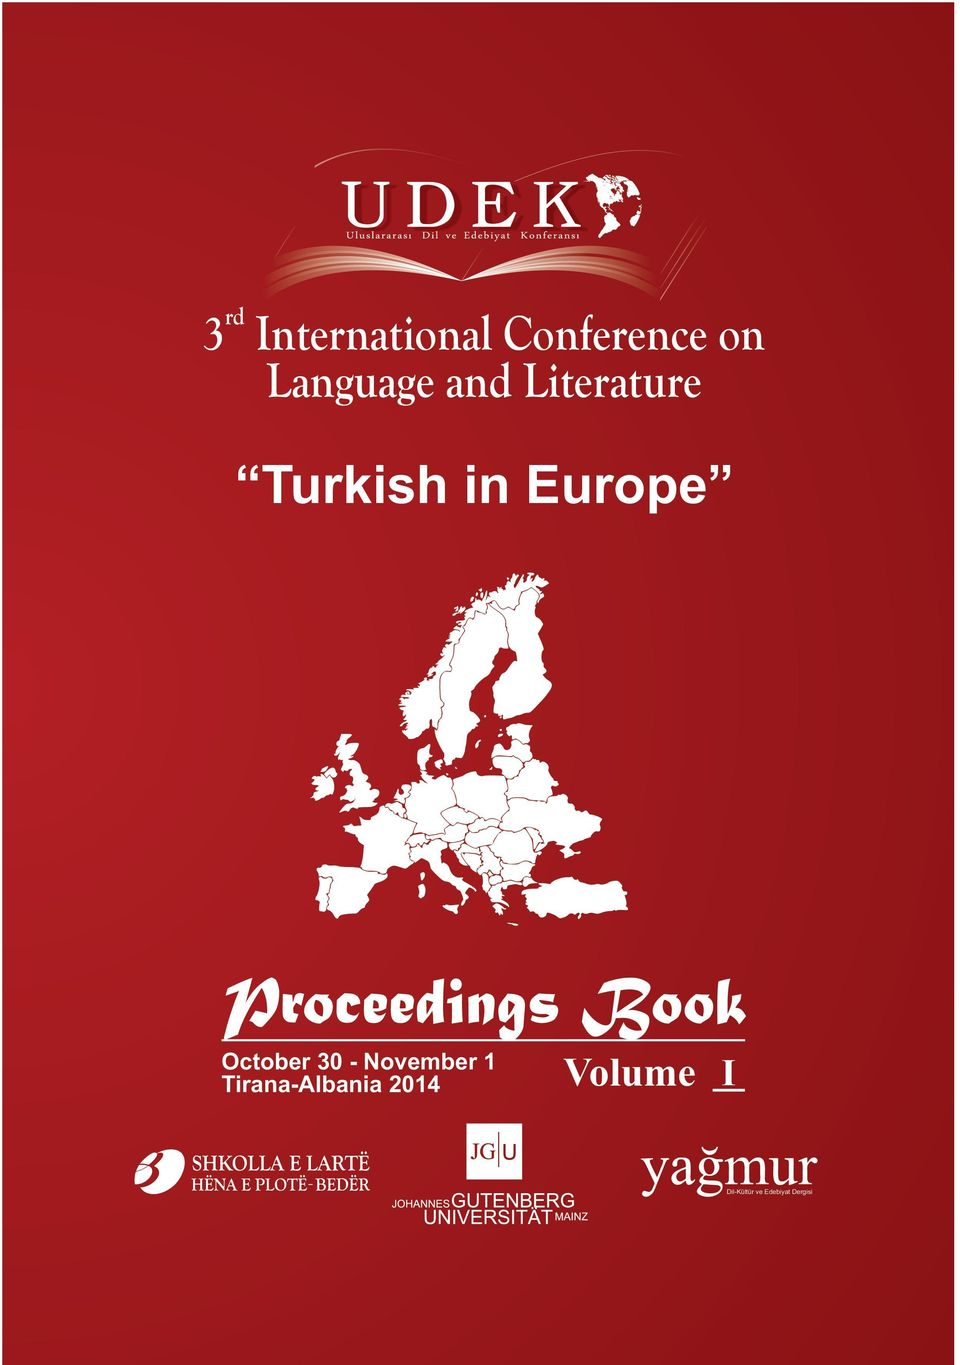 Proceedings Book October 30 - November 1